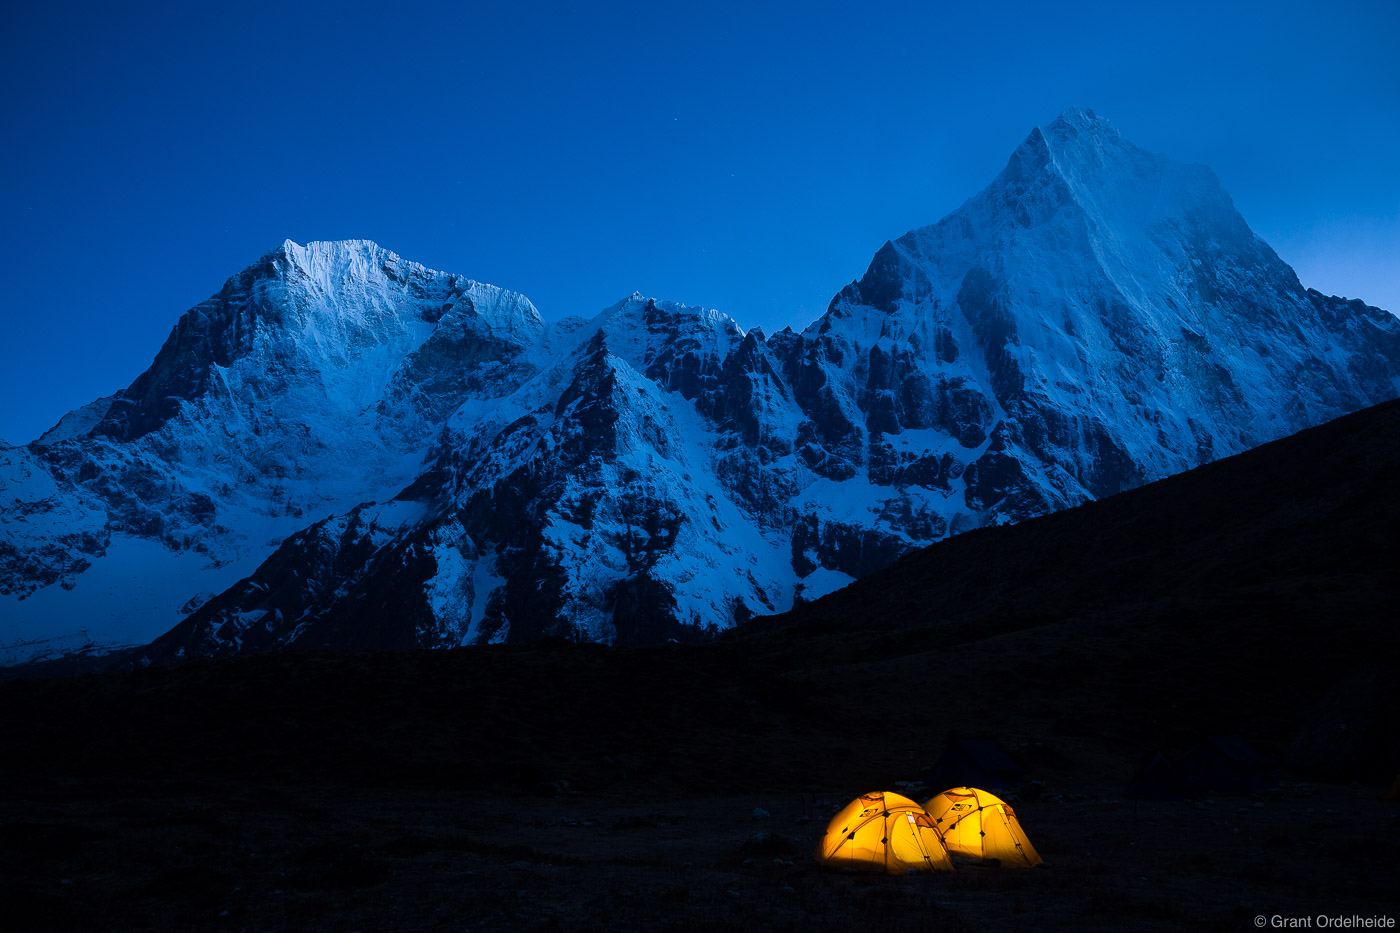 Two tents illuminated at Lobuche East basecamp with Taboche and Cholatse towering above them.